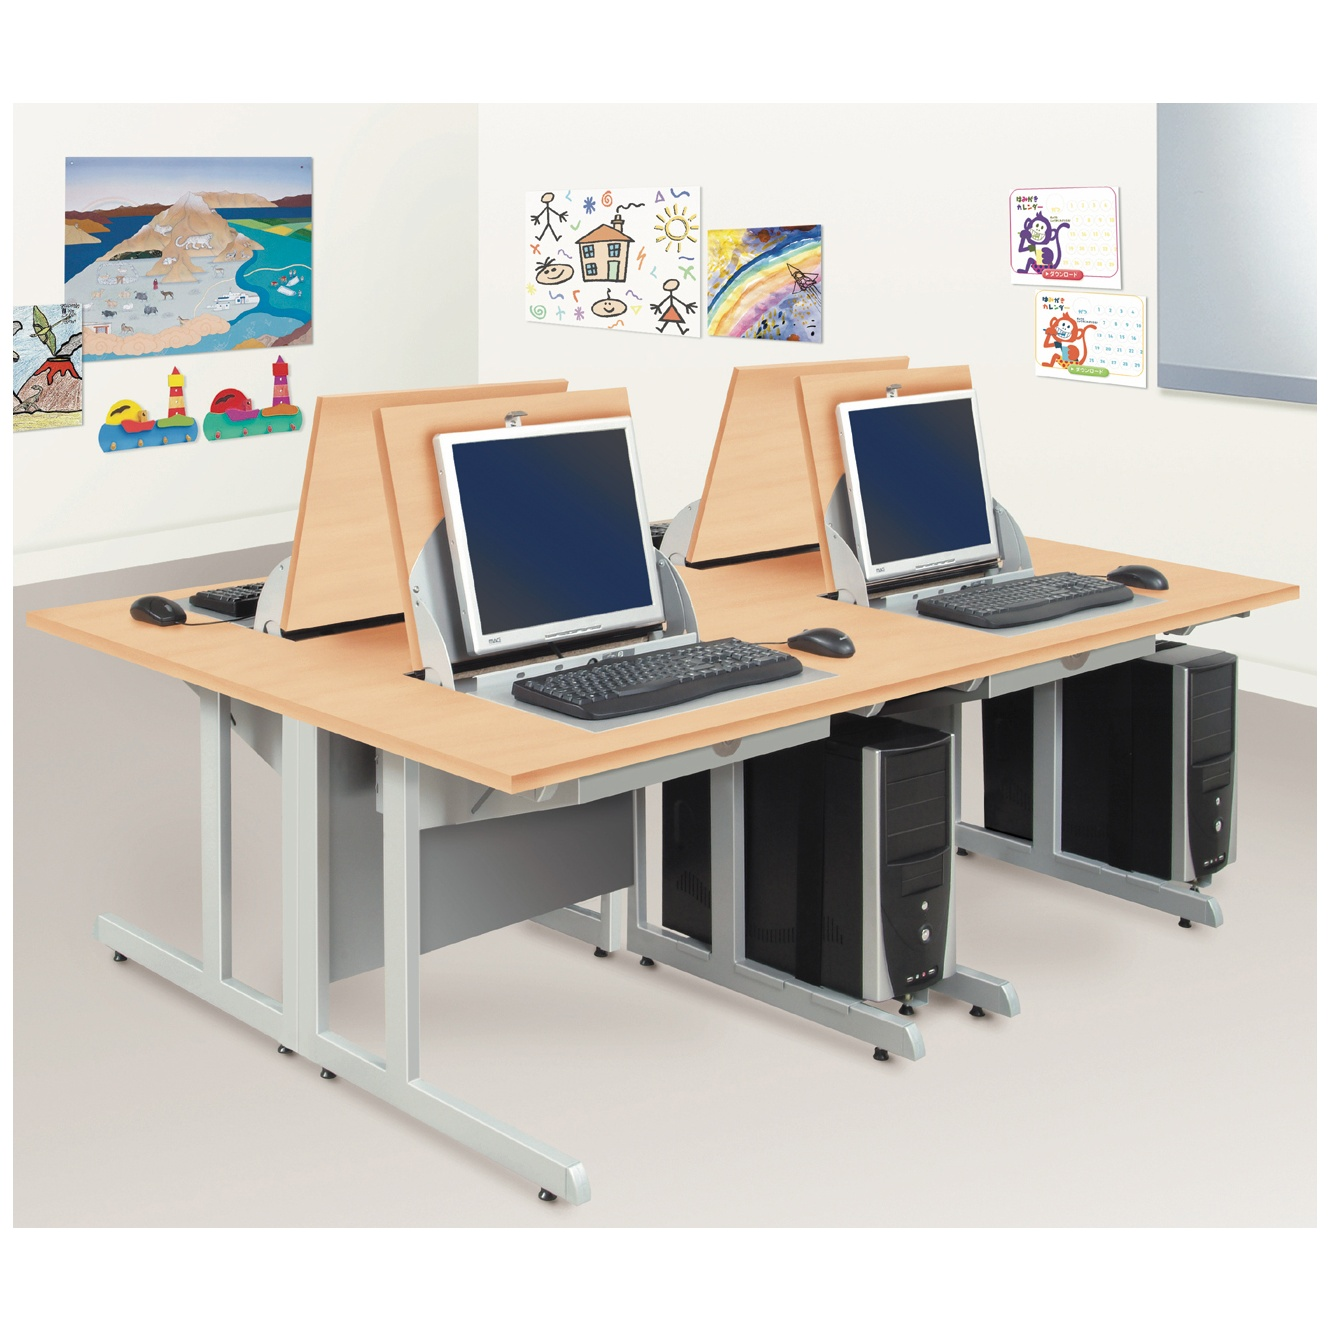 - SmartTop ICT Desks - Two Person Computer Desks School IT Chairs